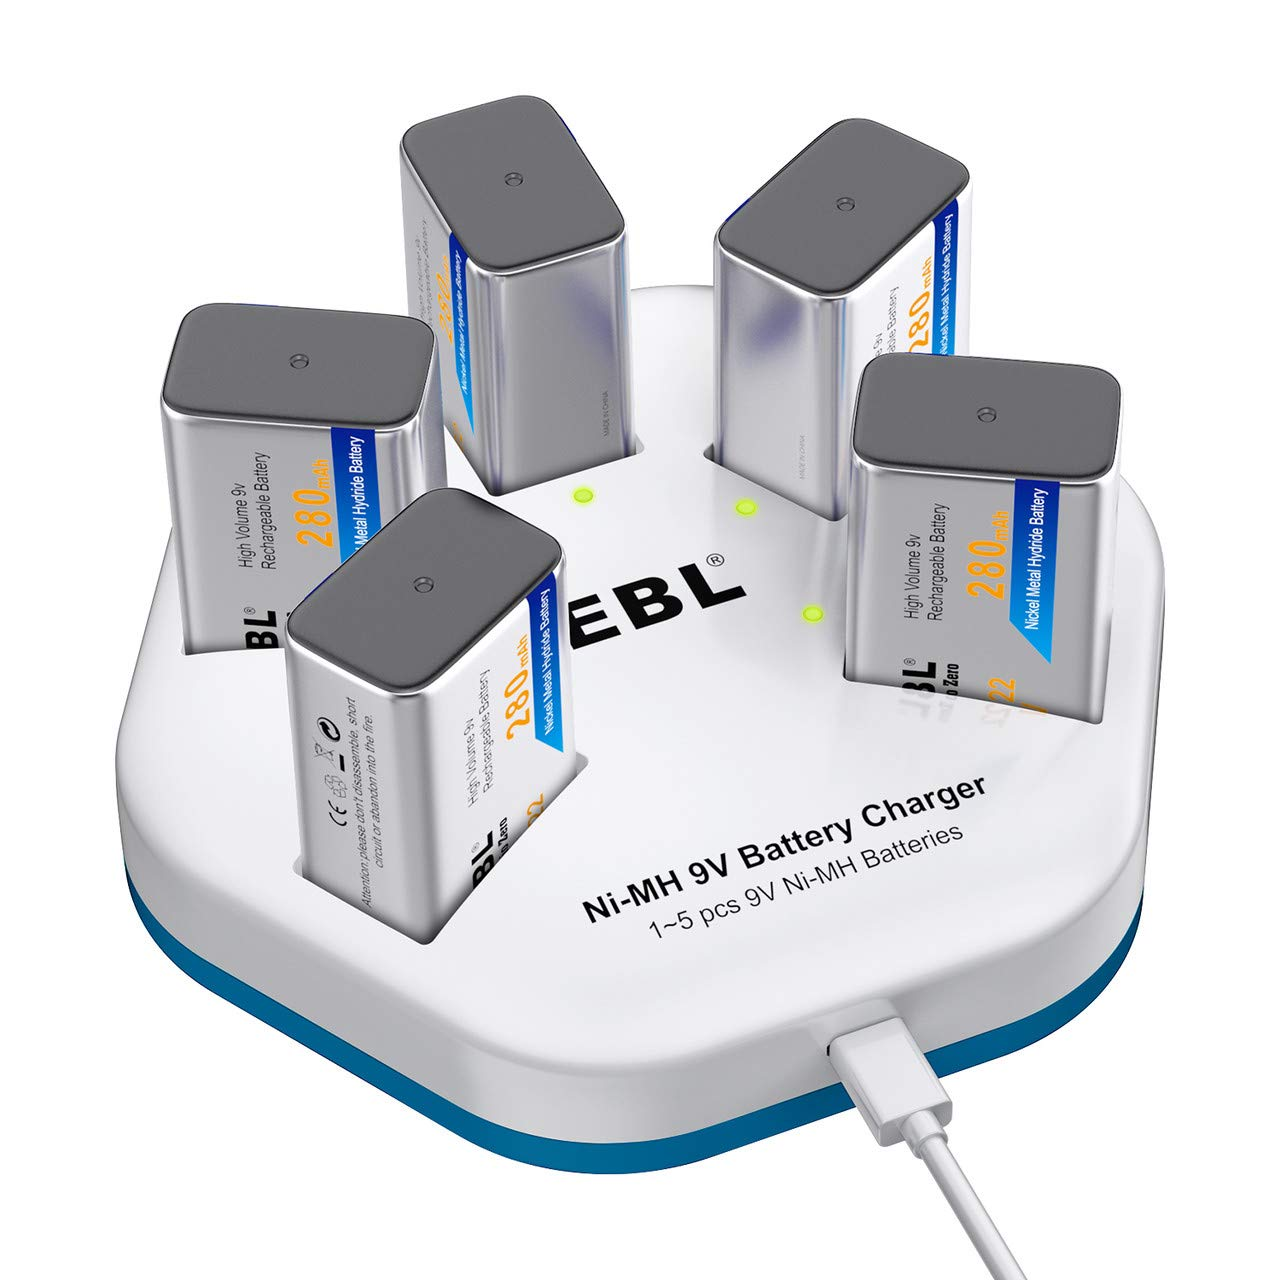 EBL 9V Batteries (5 Packs) 280mAh NiMH Battery with 5-Slot Battery Charger for 9V Battery